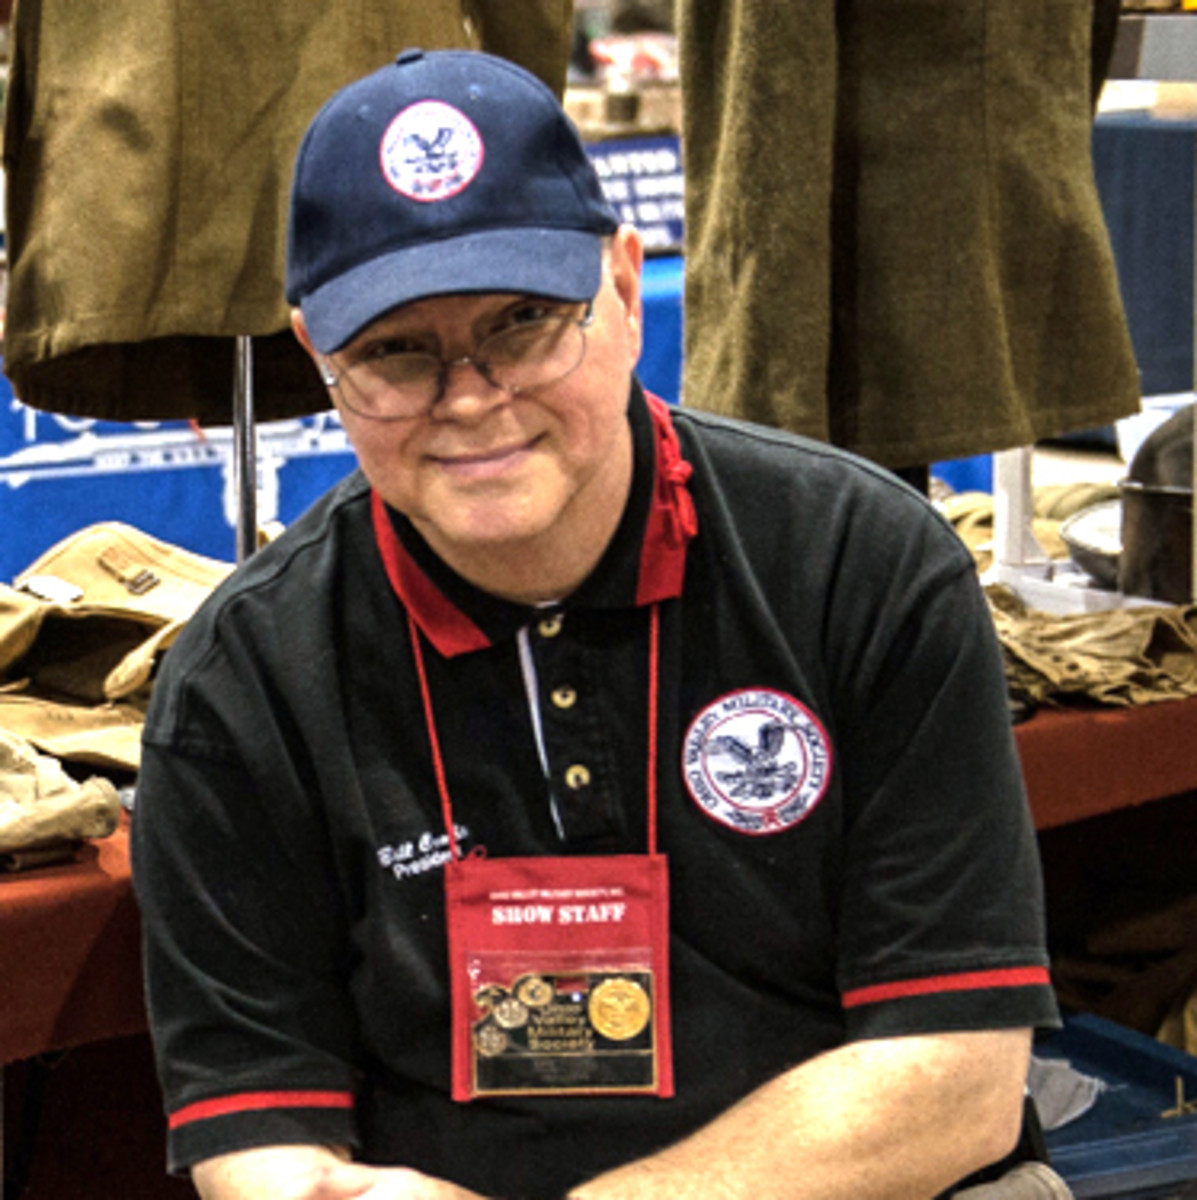 Bill Combs, a collector and dealer for more than 45 years, is President of the Ohio Valley Military Society (OVMS)—the new owners of the MAX Show.